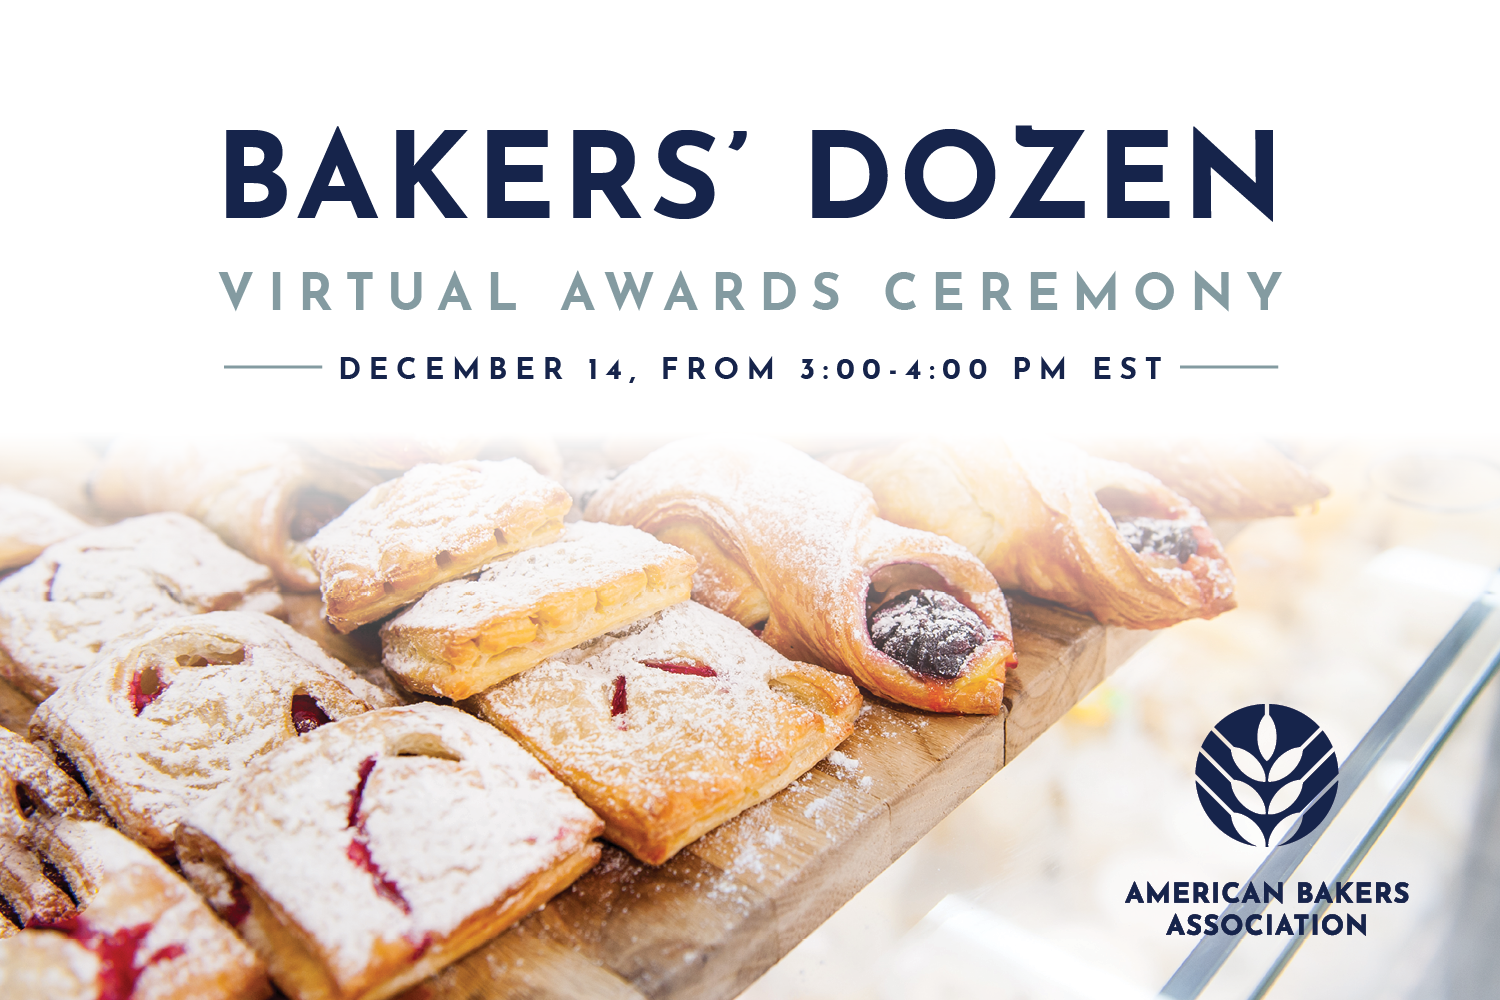 American Bakers Association bakers dozen awards 2020